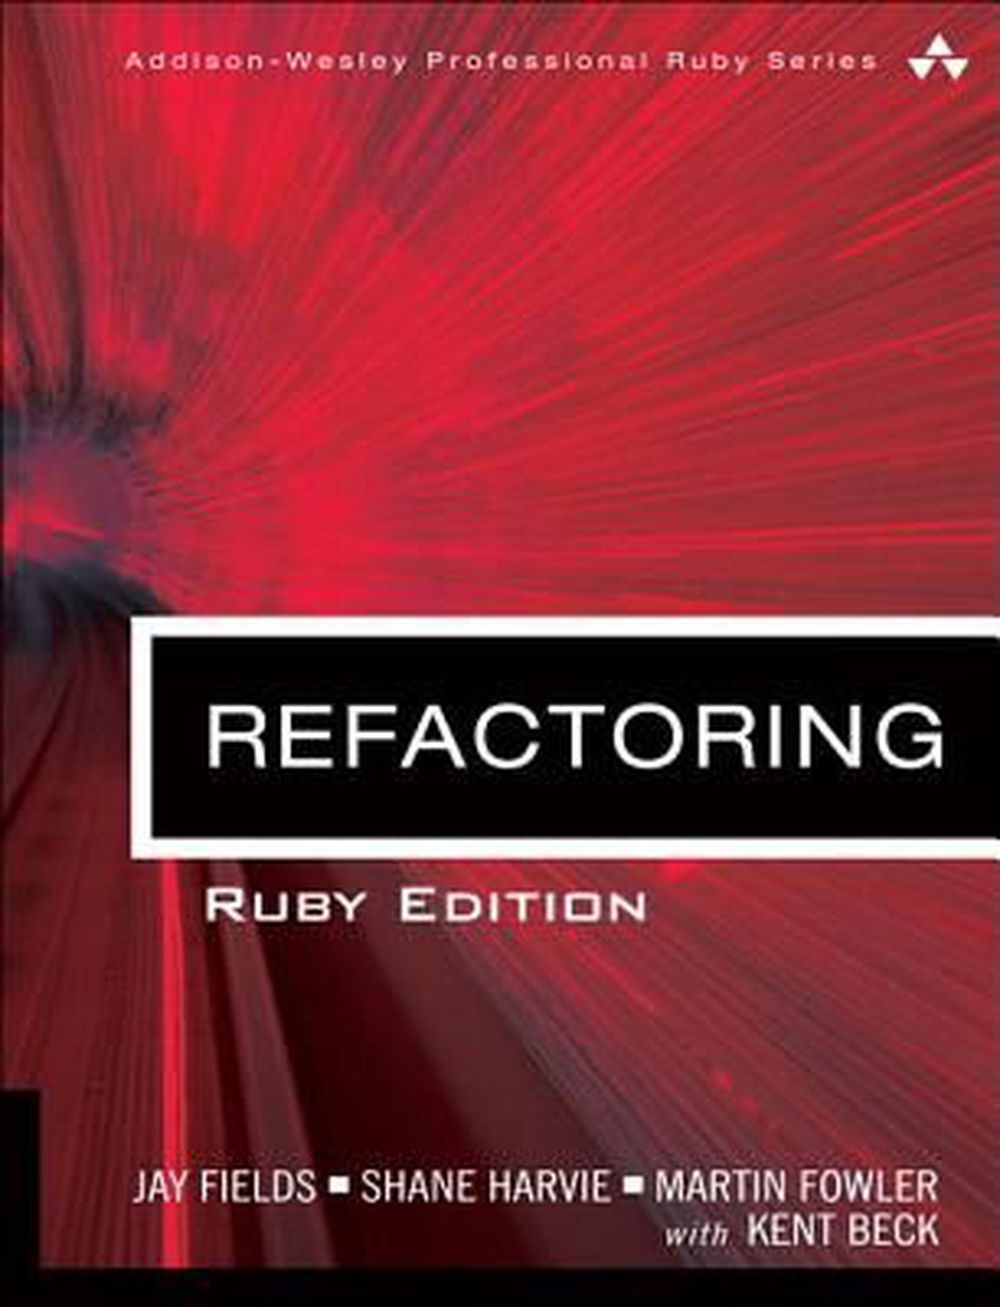 Refactoring-RubyEdition